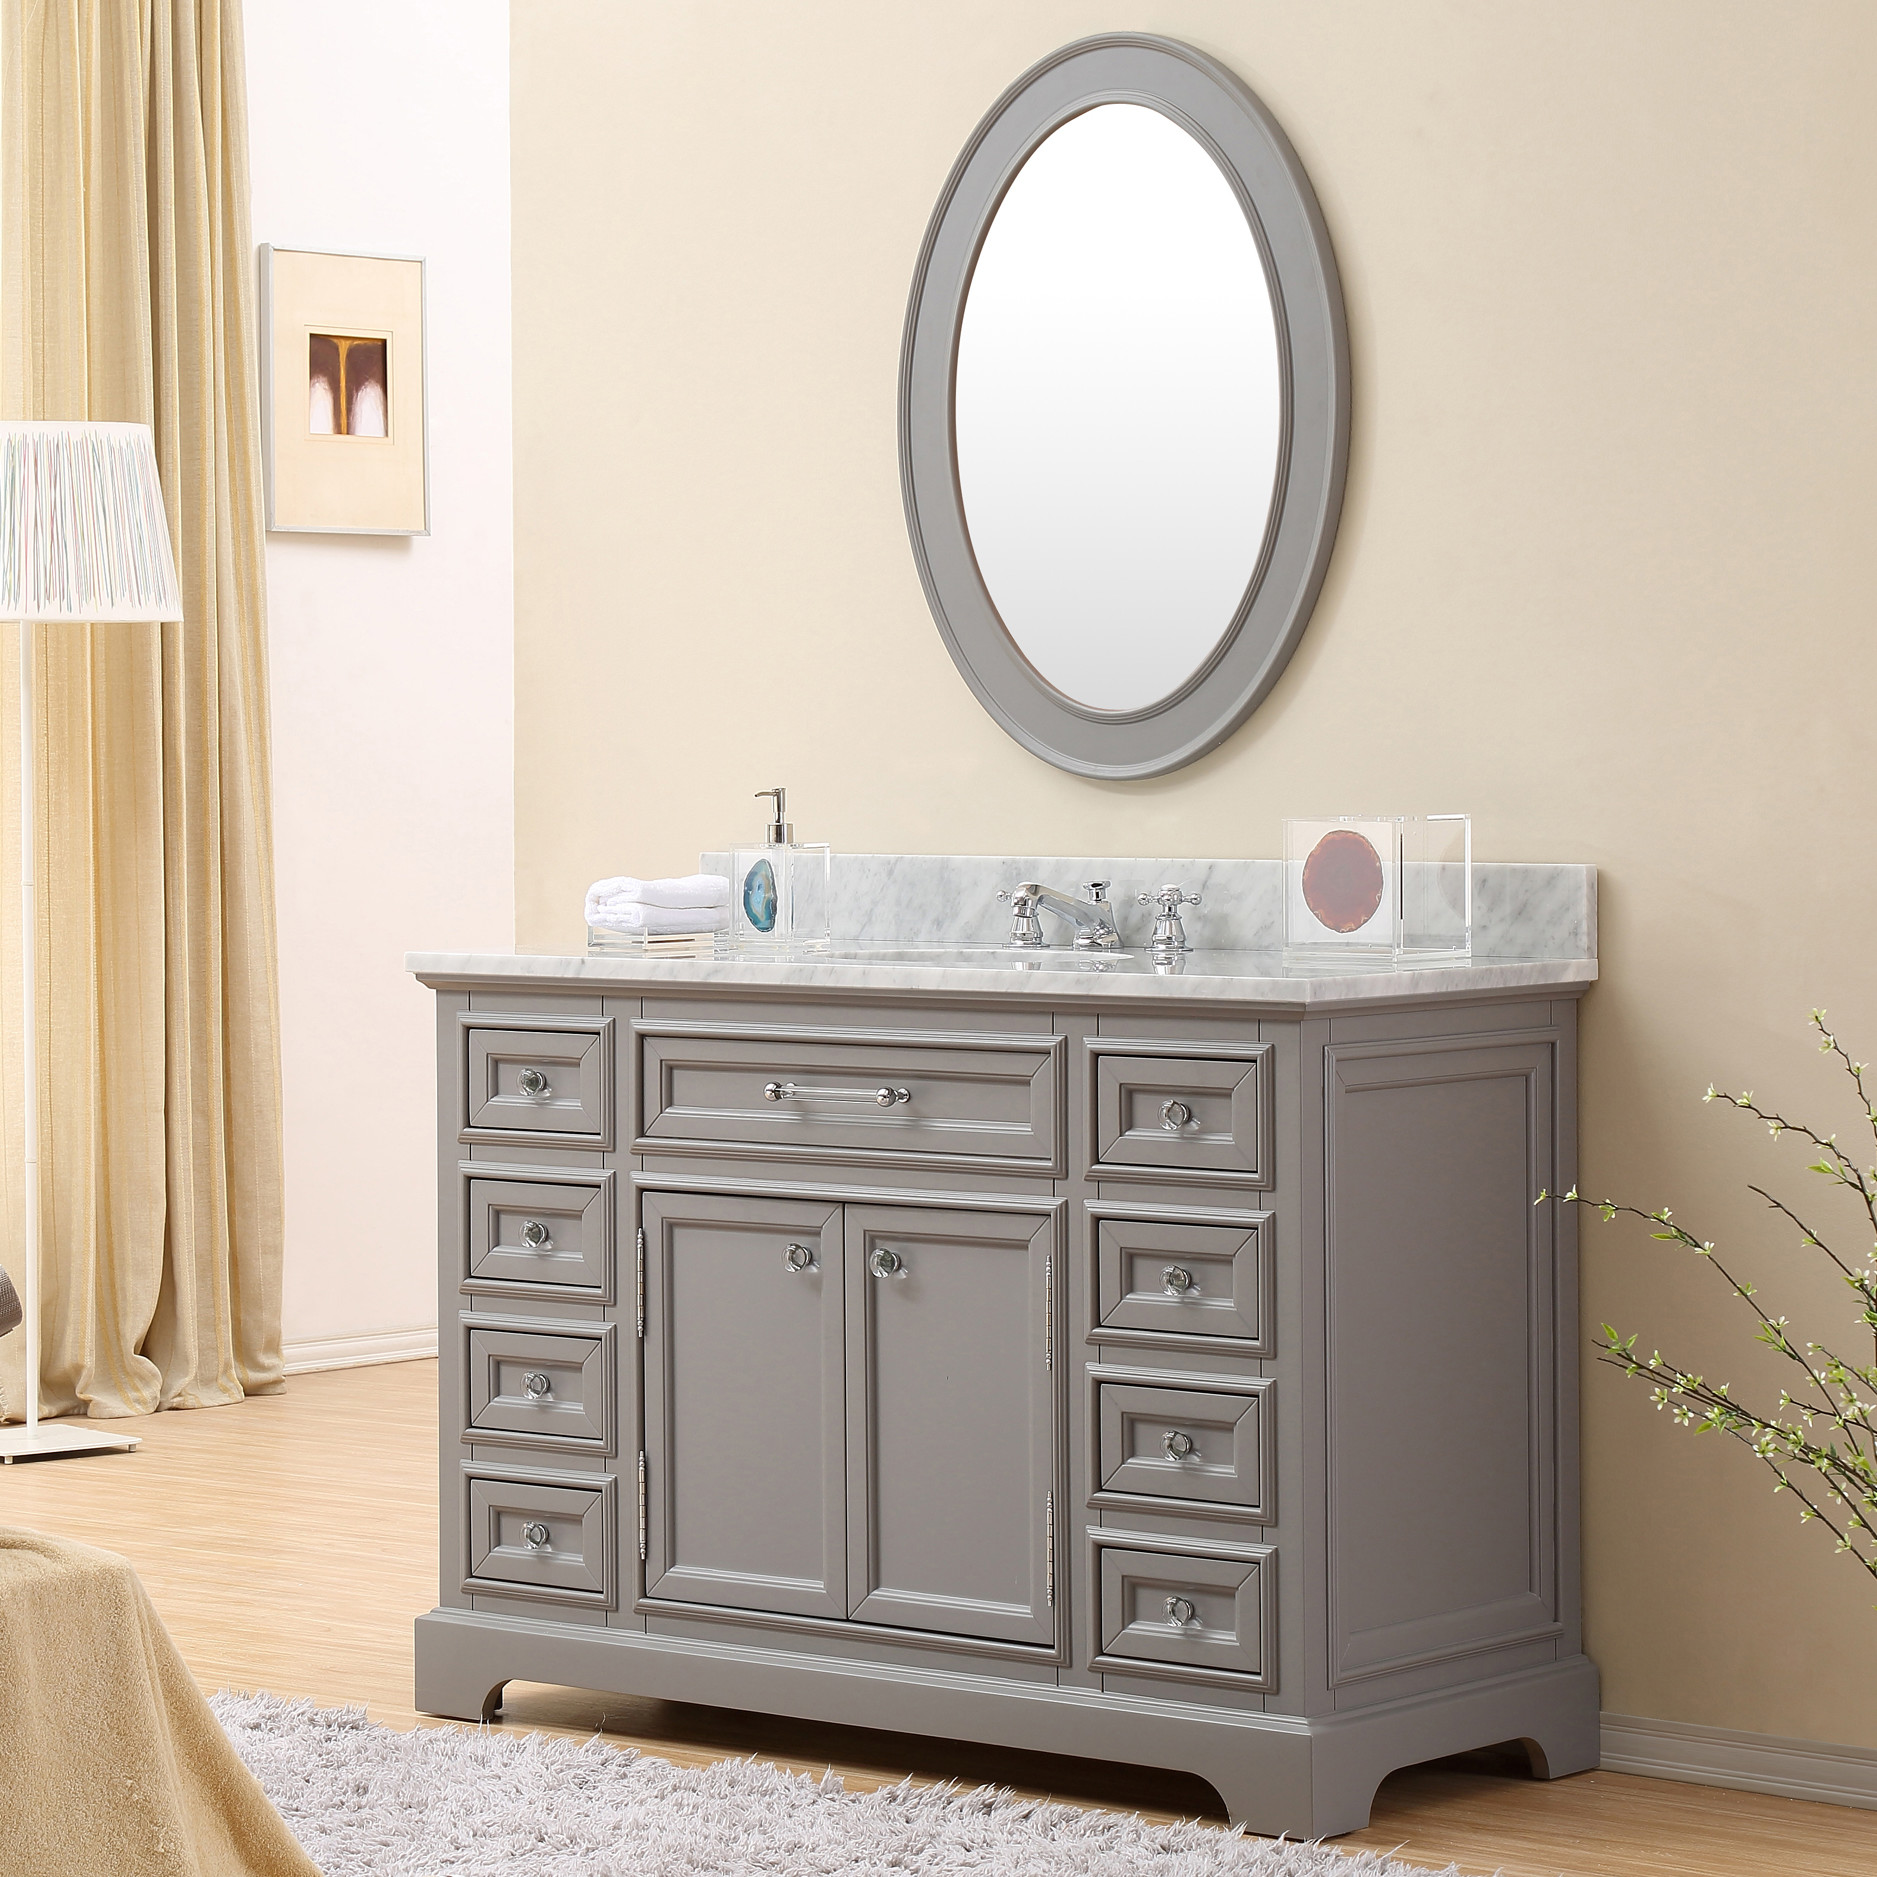 diy before this ideas do with after trendsetter gray accessories can bathroom vanity bath you weekend pin upcycled and updates